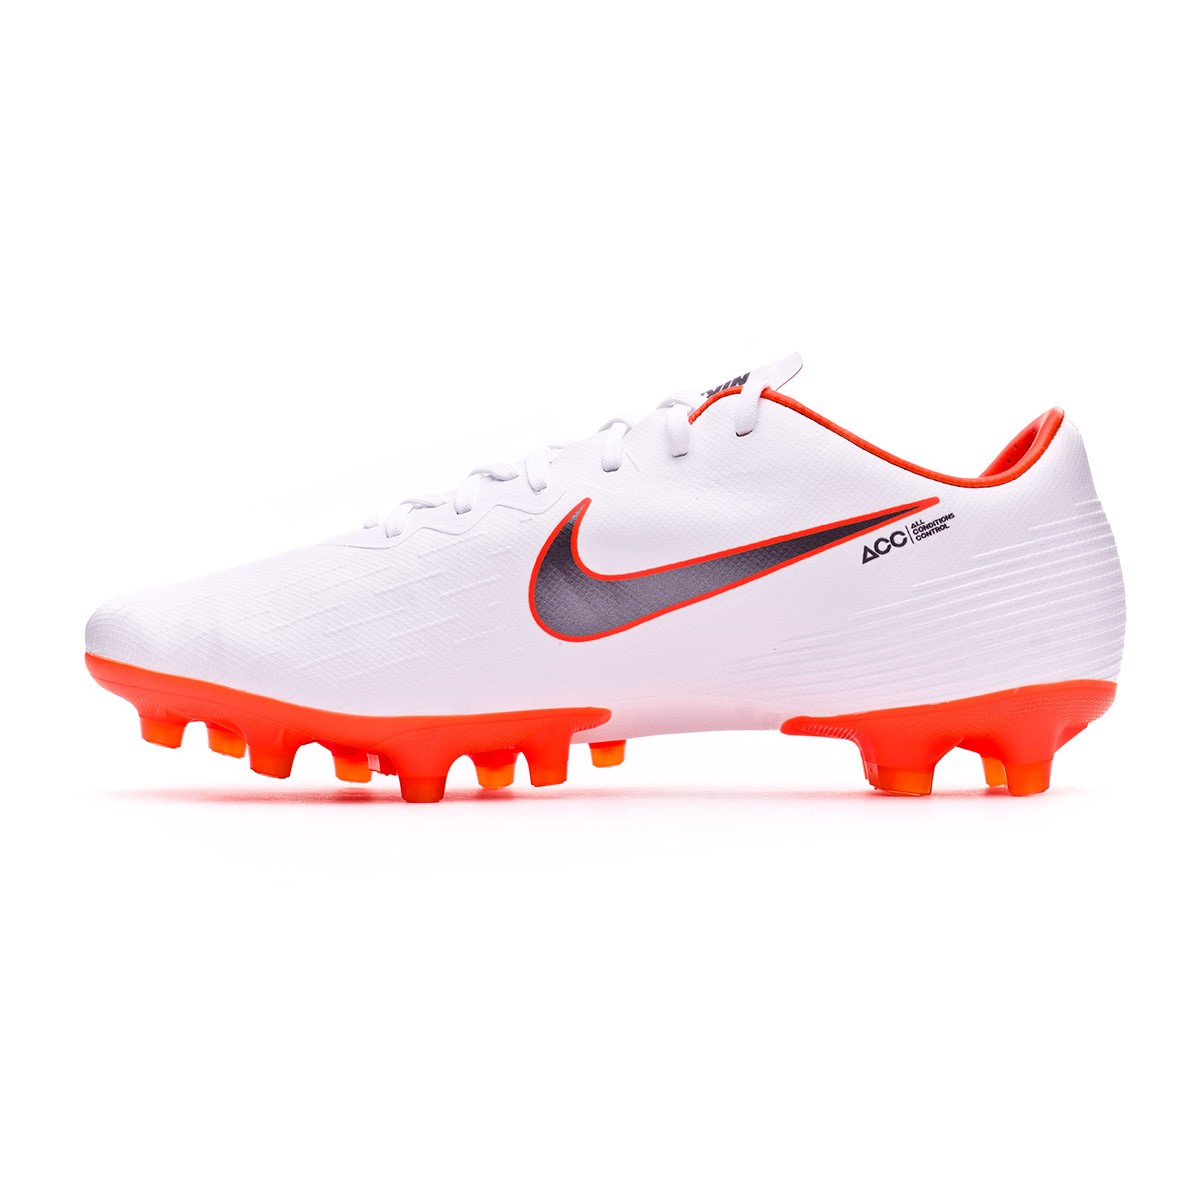 4336a4af0bc Football Boots Nike Mercurial Vapor XII Pro AG-Pro White-Metallic cool grey-Total  orange - Football store Fútbol Emotion